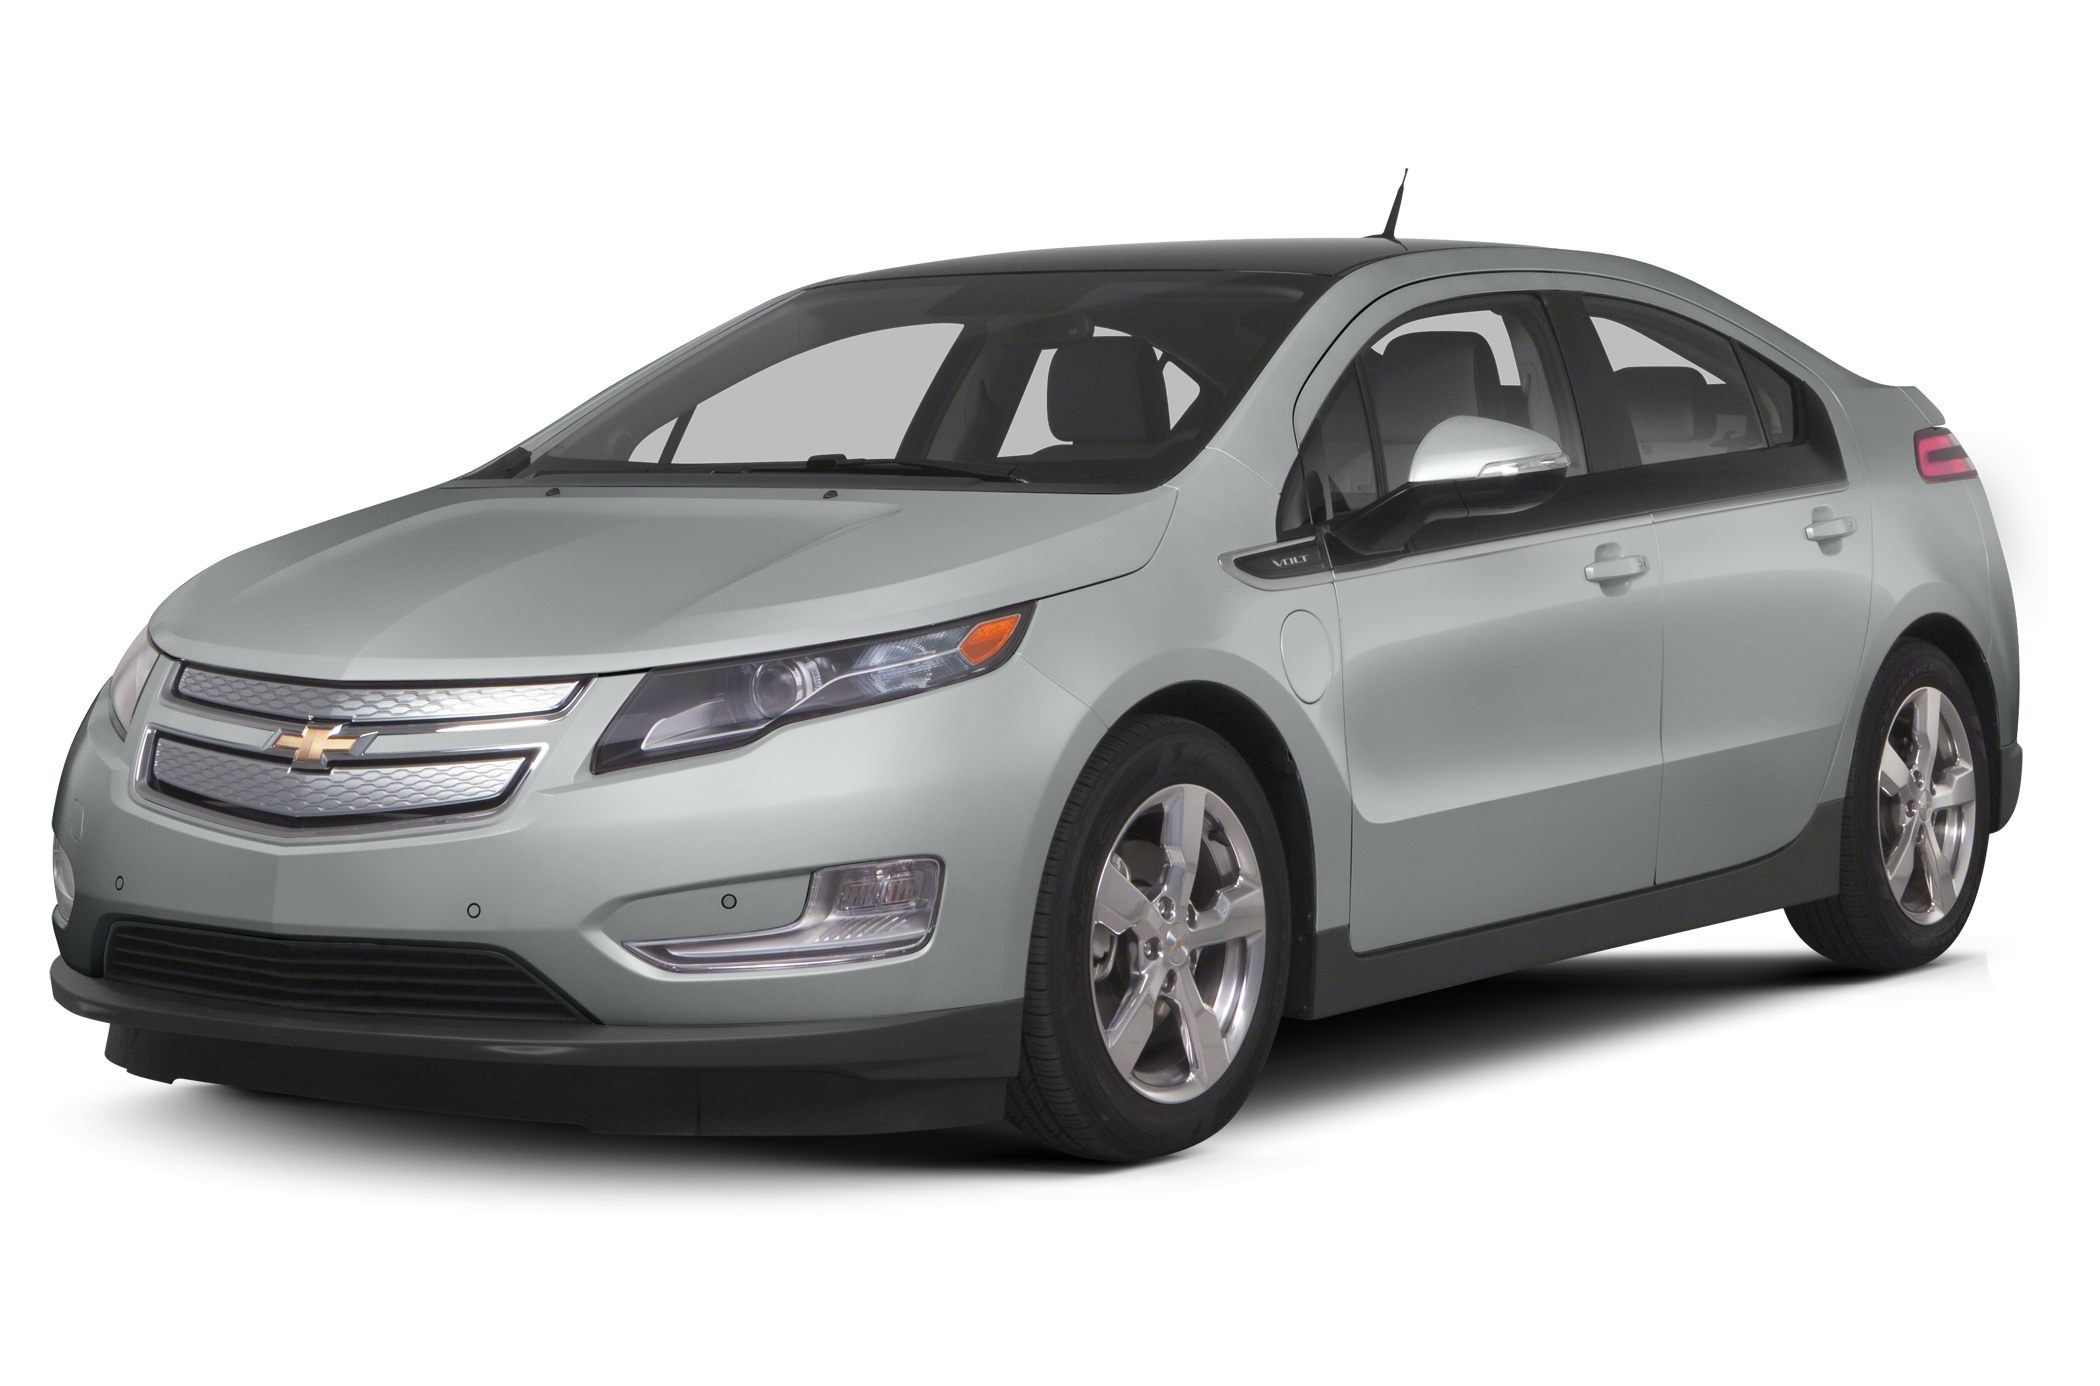 2013 Chevrolet Volt Base Hatchback for sale in Eden for $39,995 with 0 miles.